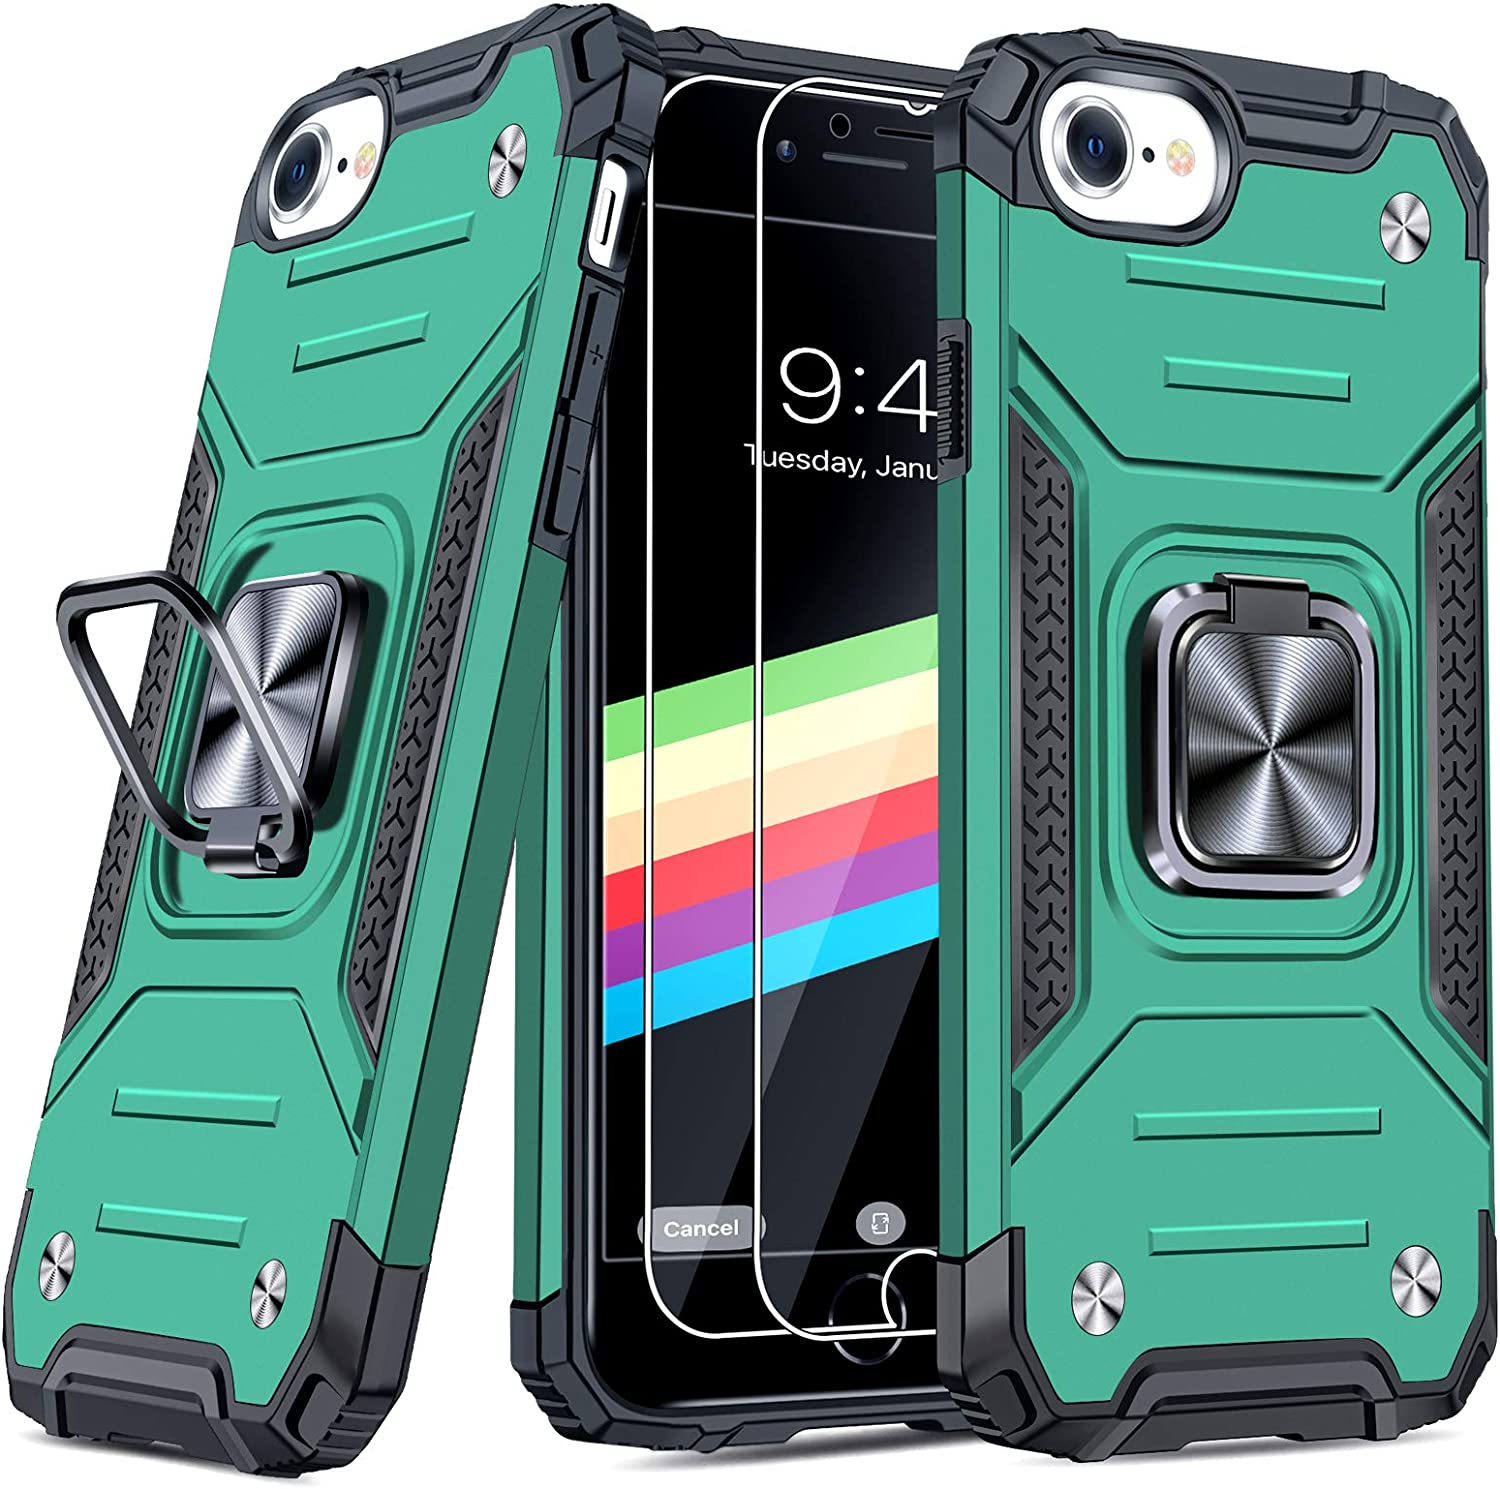 """JAME Case for iPhone SE 2020 Case with [Tempered-Glass Screen Protector 2Pcs], for iPhone 8 Case, for iPhone 7 Case, for iPhone 6s/6 Case, Military-Grade Protection, with Ring Kickstand, 4.7"""" Green"""